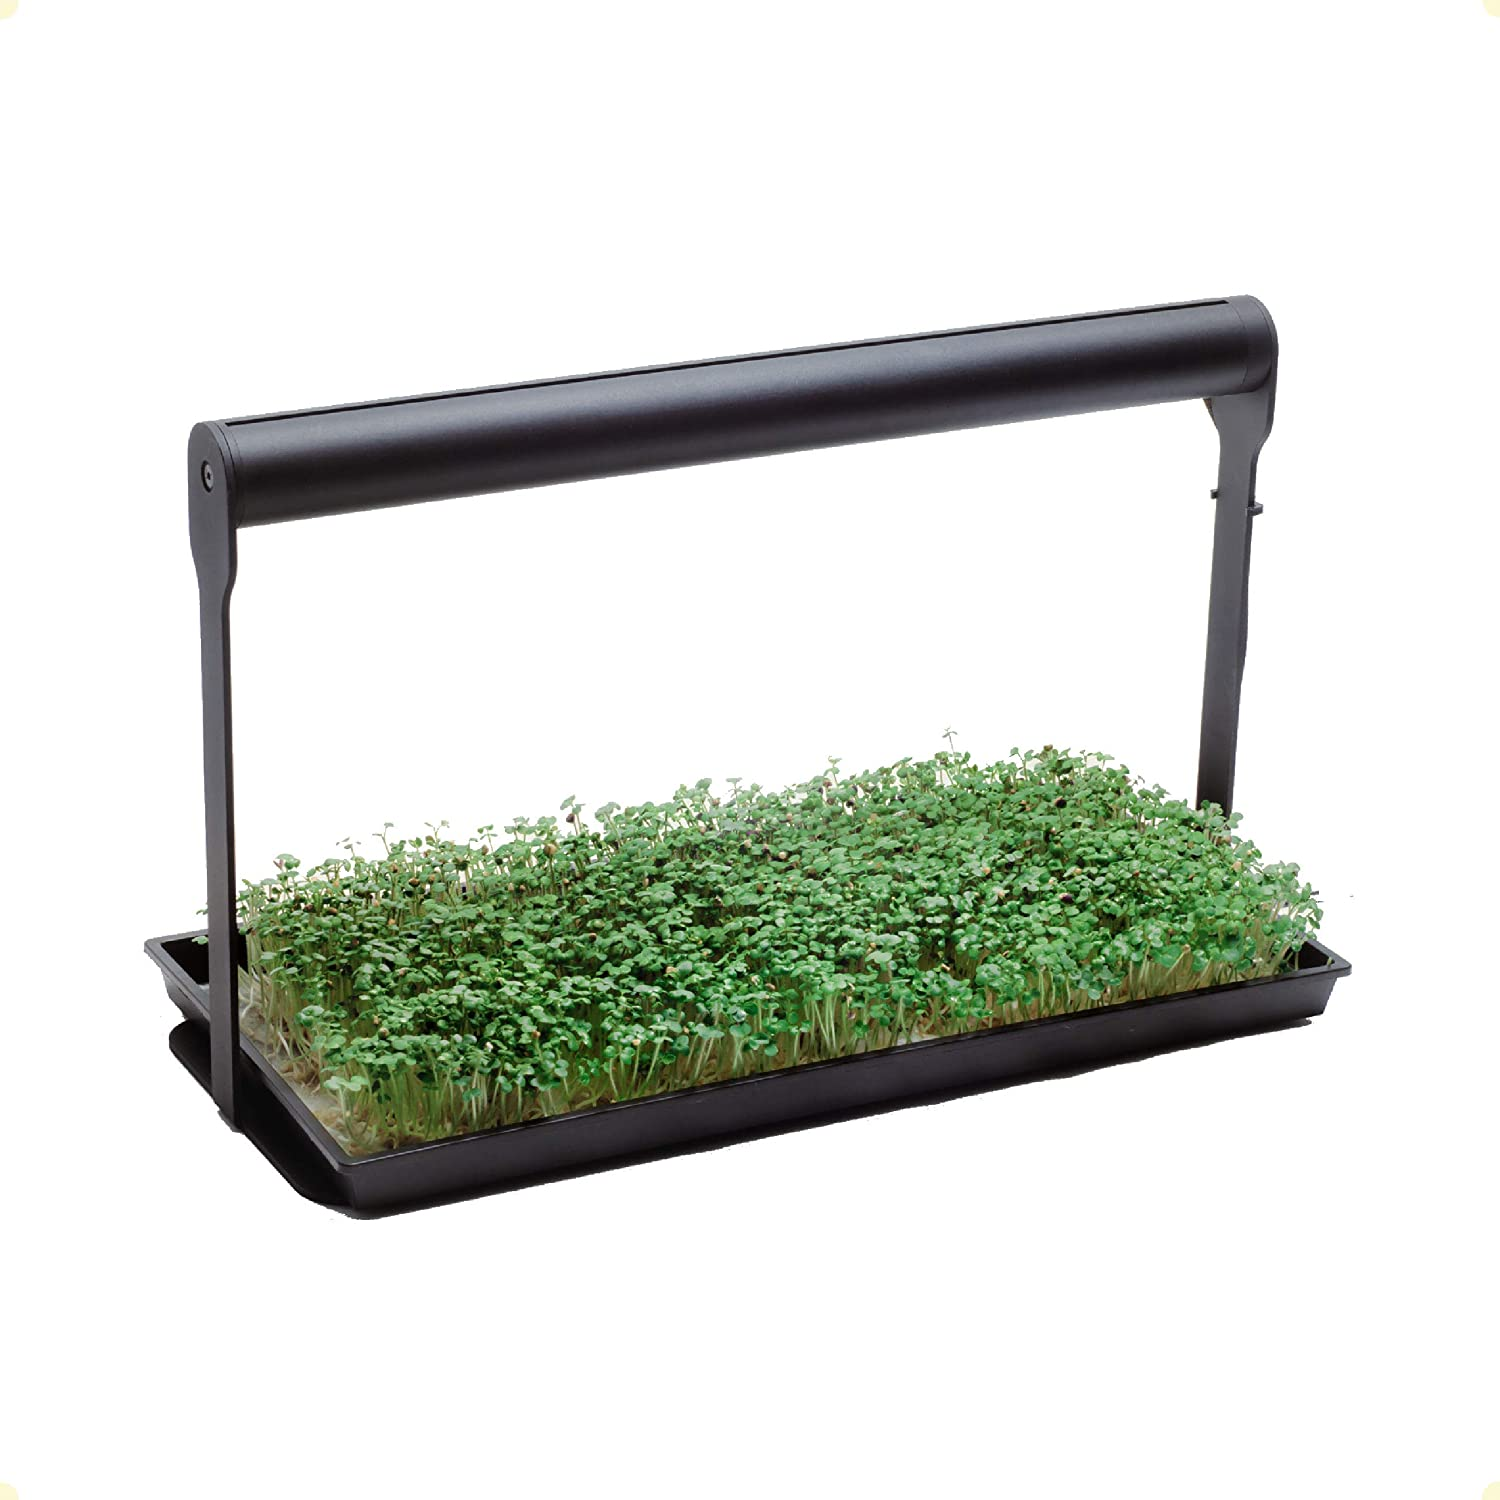 MicroFarm | Professional Microgreen Gardening Kit | Indoor Garden | Incl. Full Spectrum LED Grow Light and Growing Trays